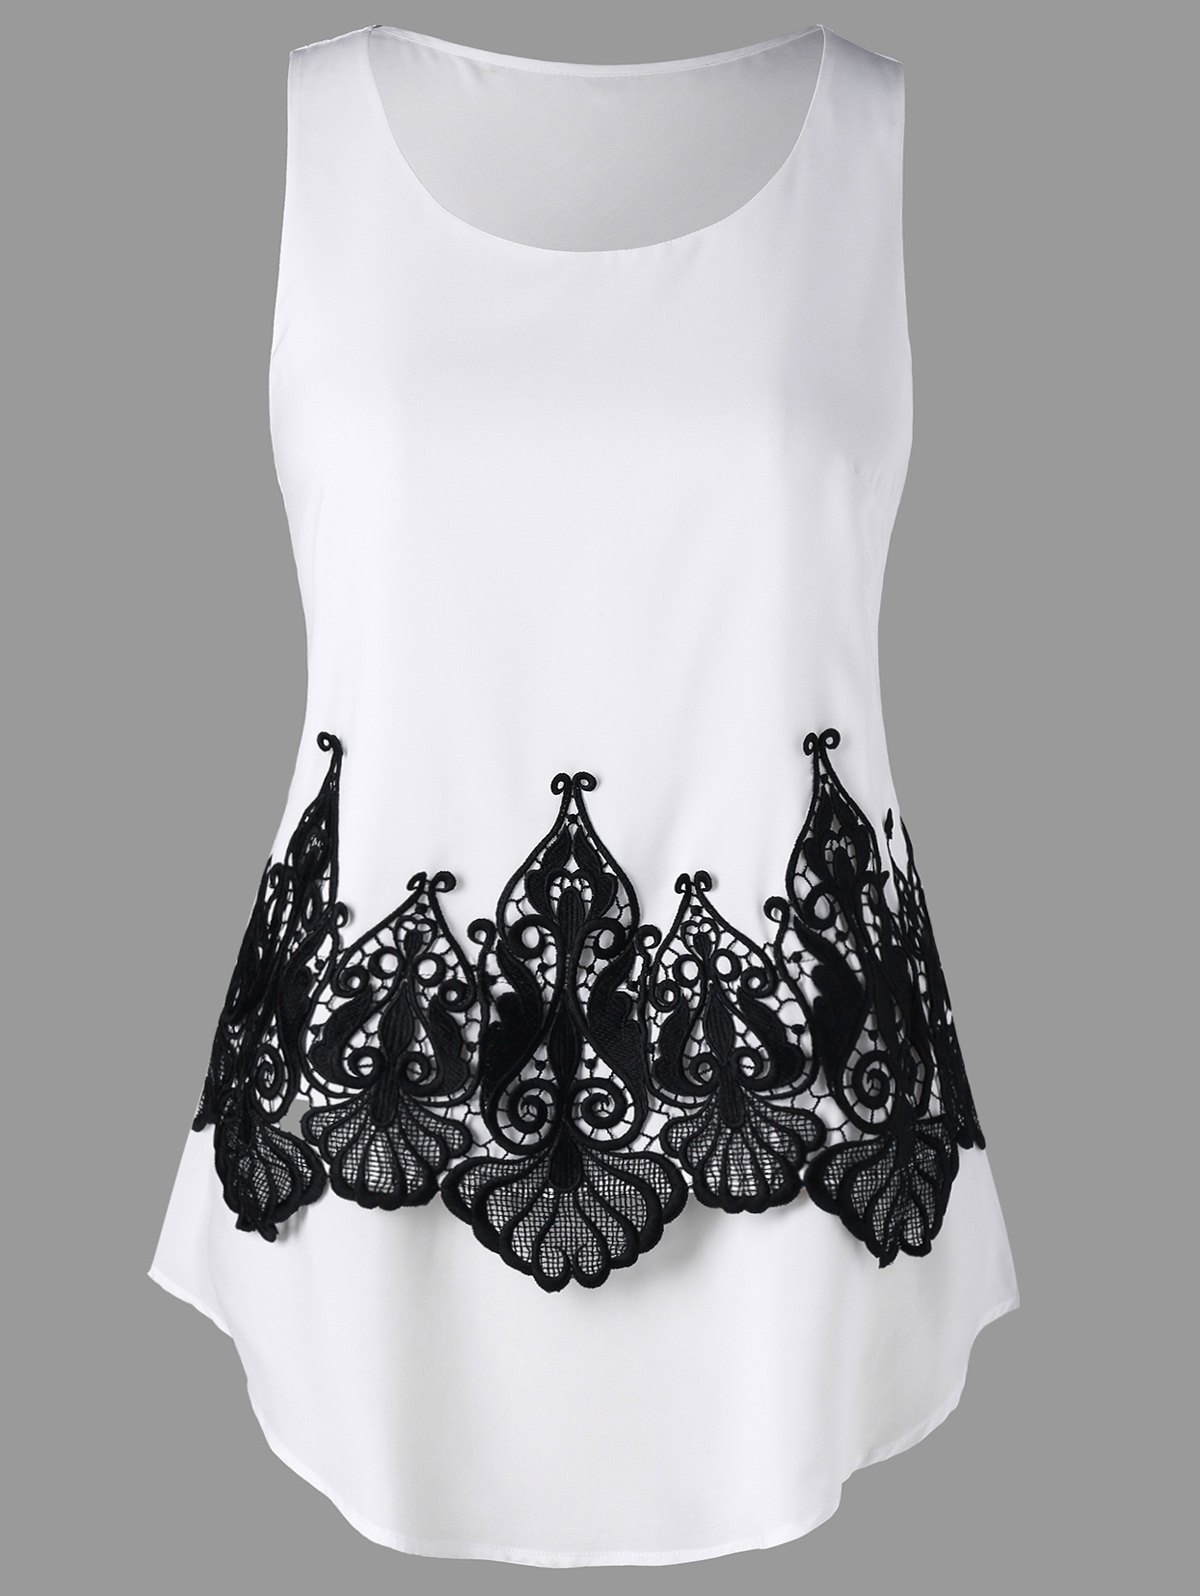 Crochet Lace Panel Tank Top crochet lace panel top